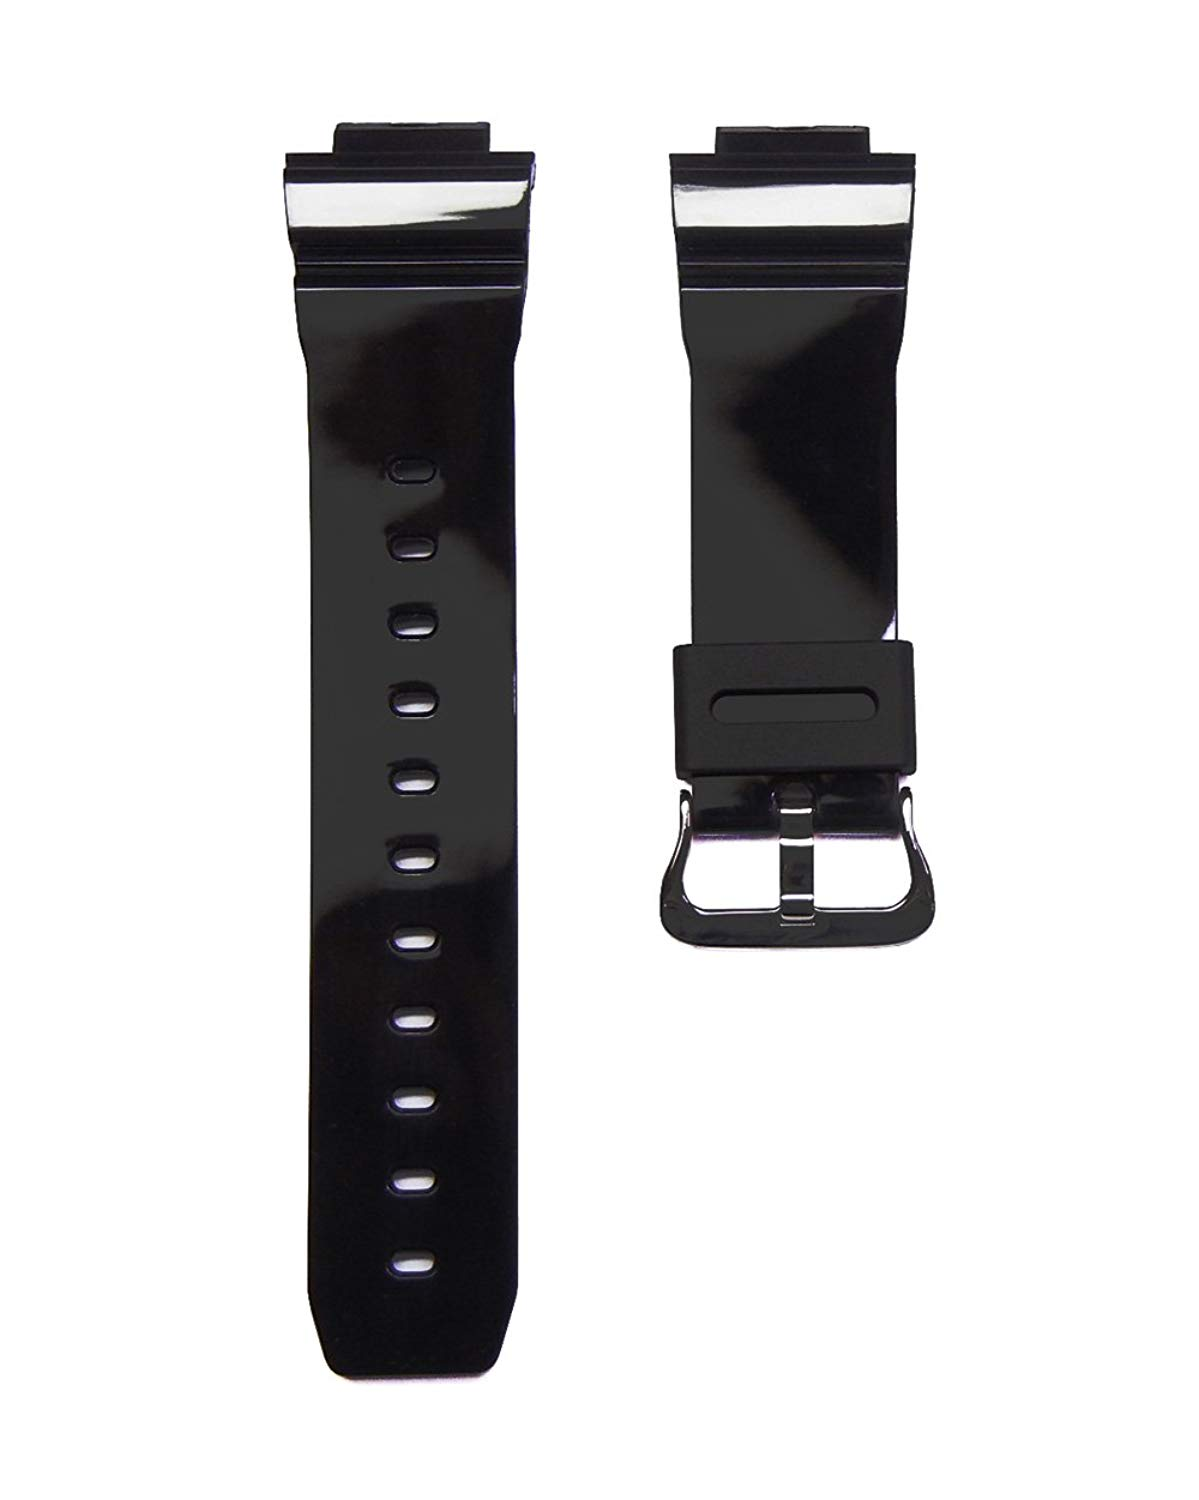 Cheap Casio G Shock Dw 9052 Find Deals On 1vdr Get Quotations Timewheel Replacement Watch Band Strap Fits Dw6900cs 1 Dw5600cs